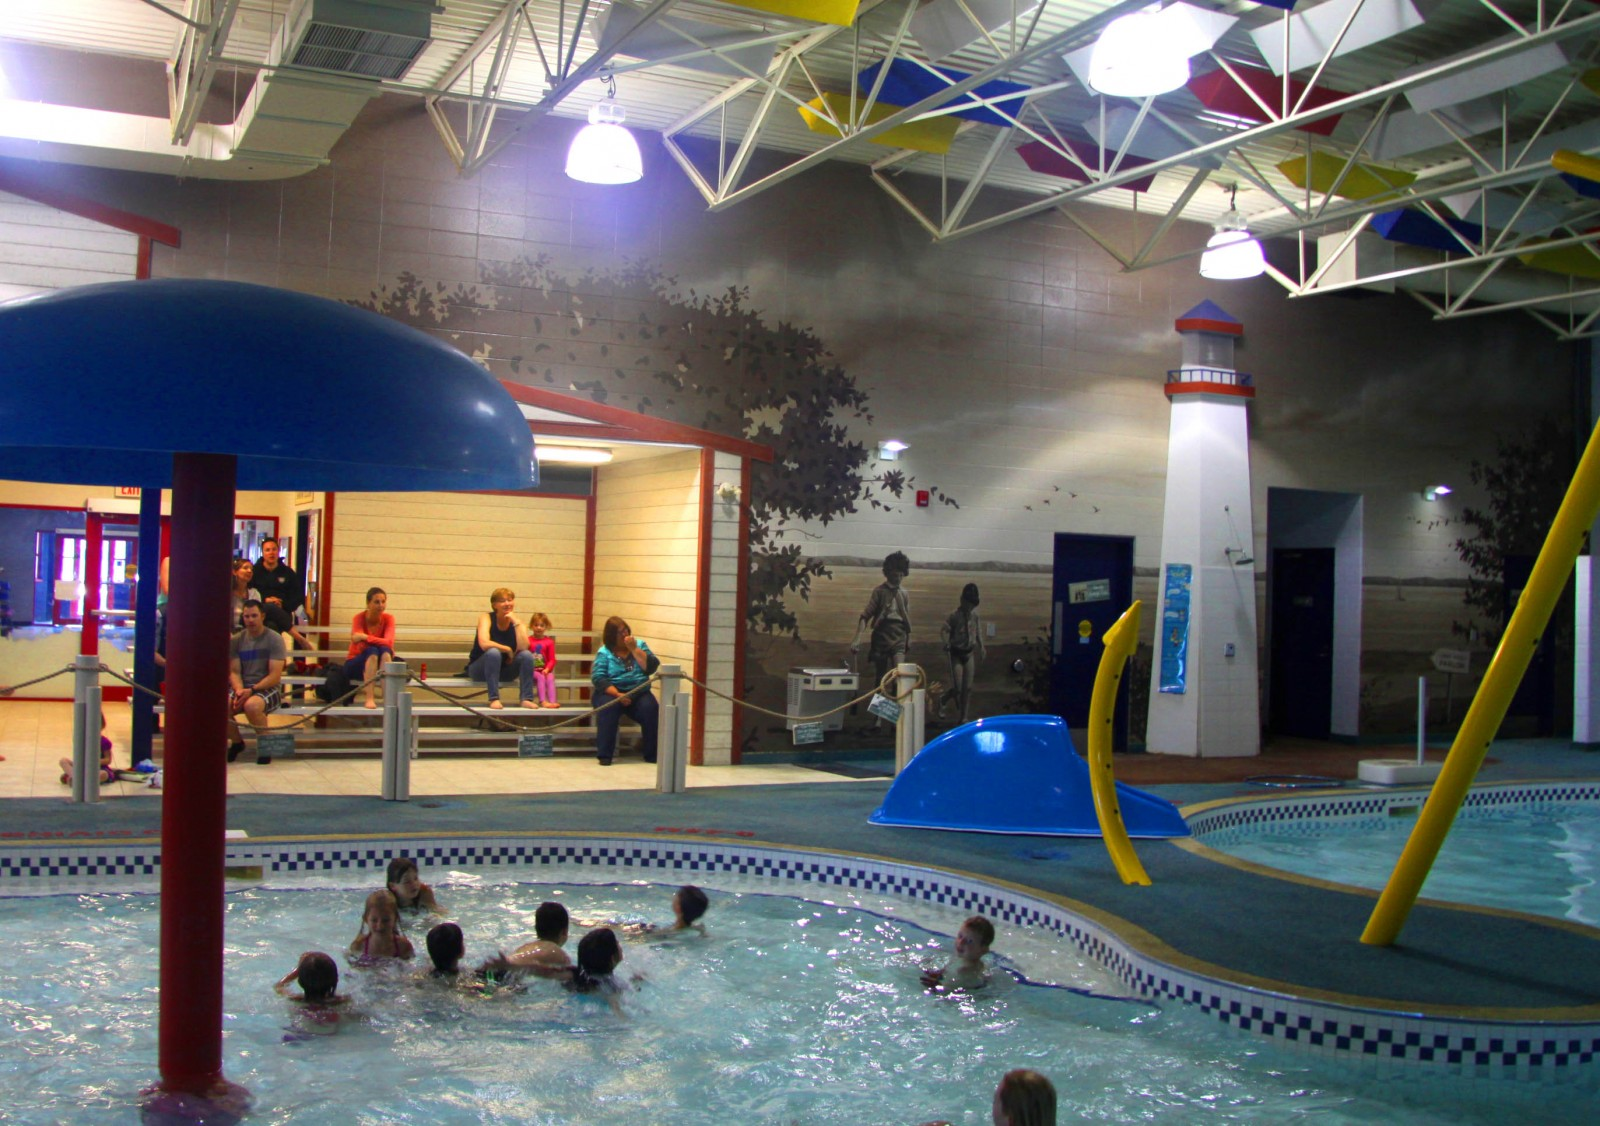 Municipal projects flying colors murals - Whitefish bay pool open swim hours ...